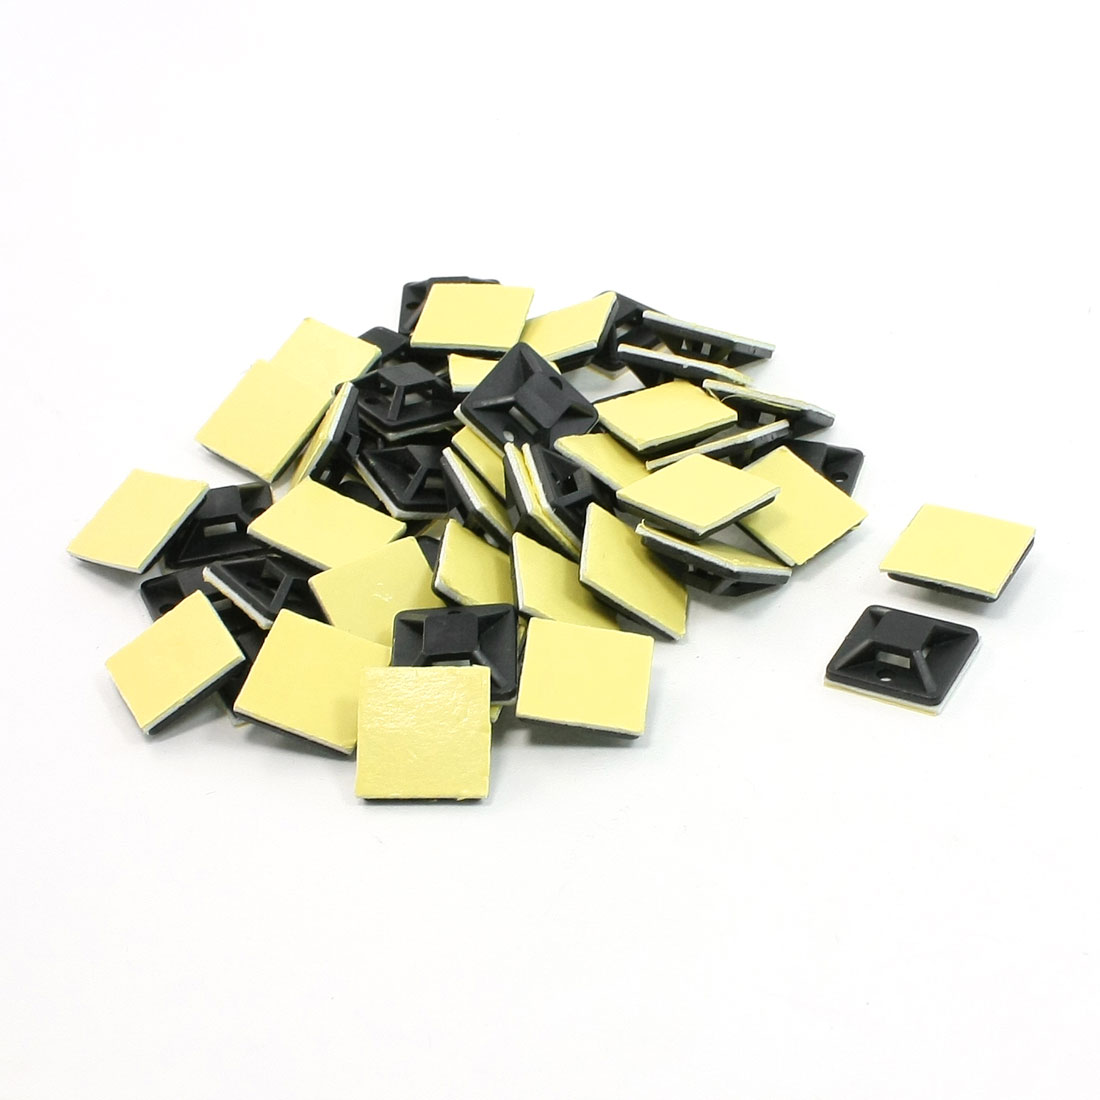 50 Pcs Black Self Adhesive Cable Tie Mount Base Holder 20 x 20 x 6mm